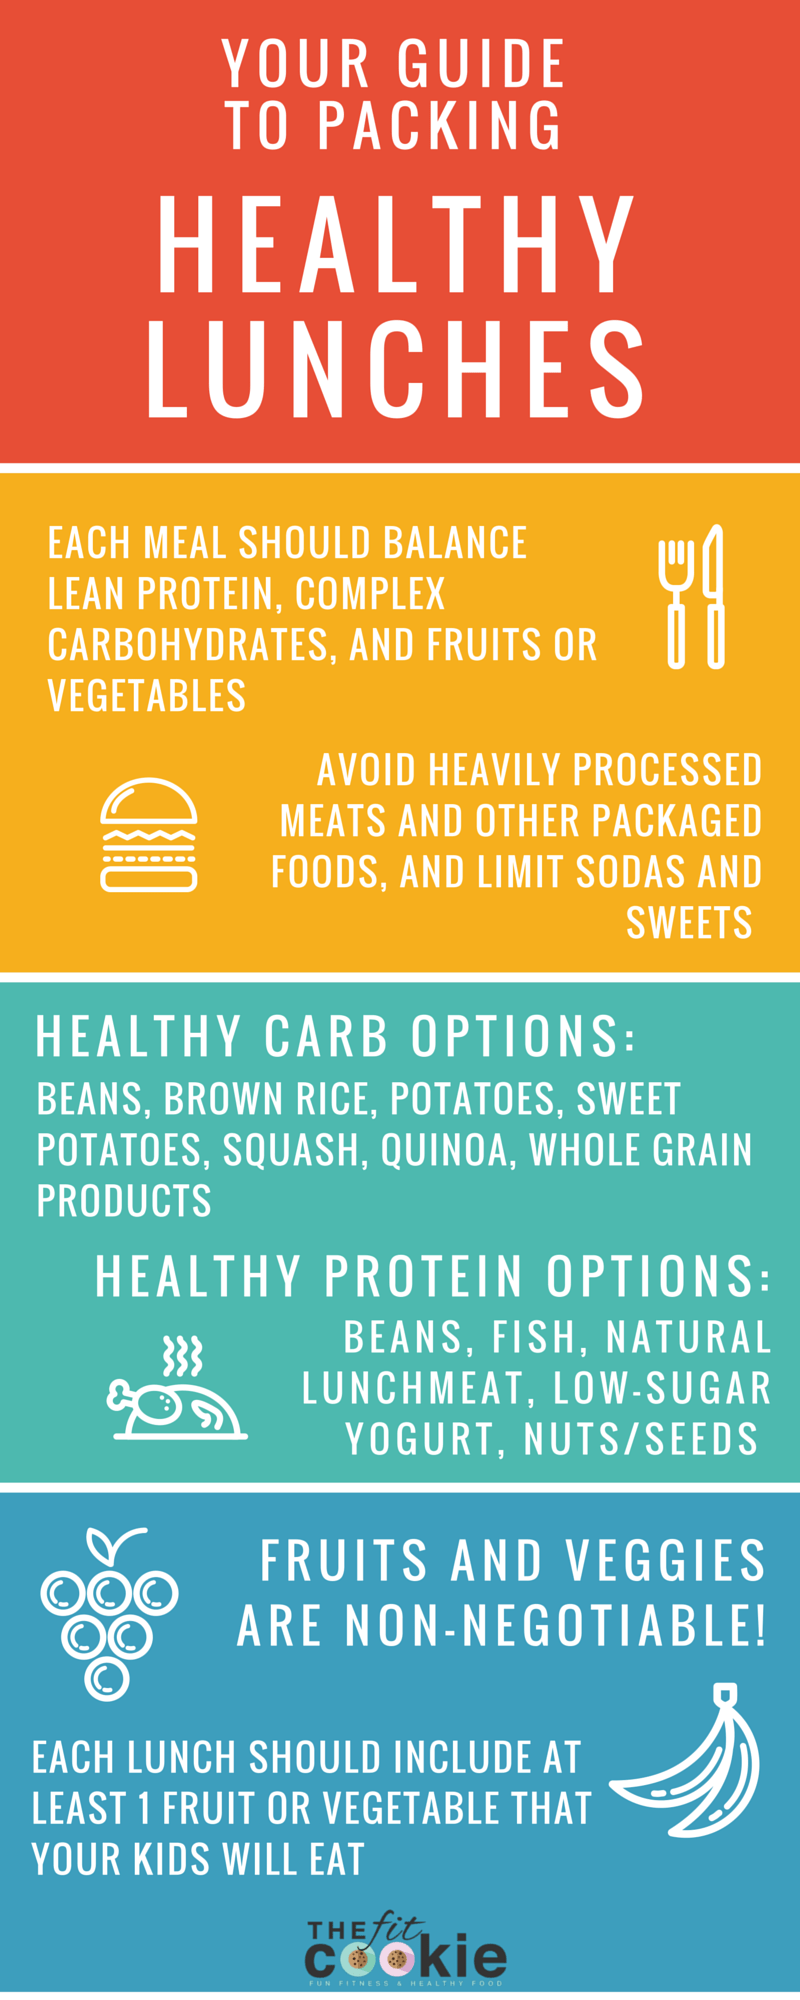 If you pack lunches for your kids for school regularly, it can get tricky figuring out what to pack that's healthy and filling. Here's a few tips on how to pack healthy lunches for school!| thefitcookie.com #backtoschool #school #lunch #snacks